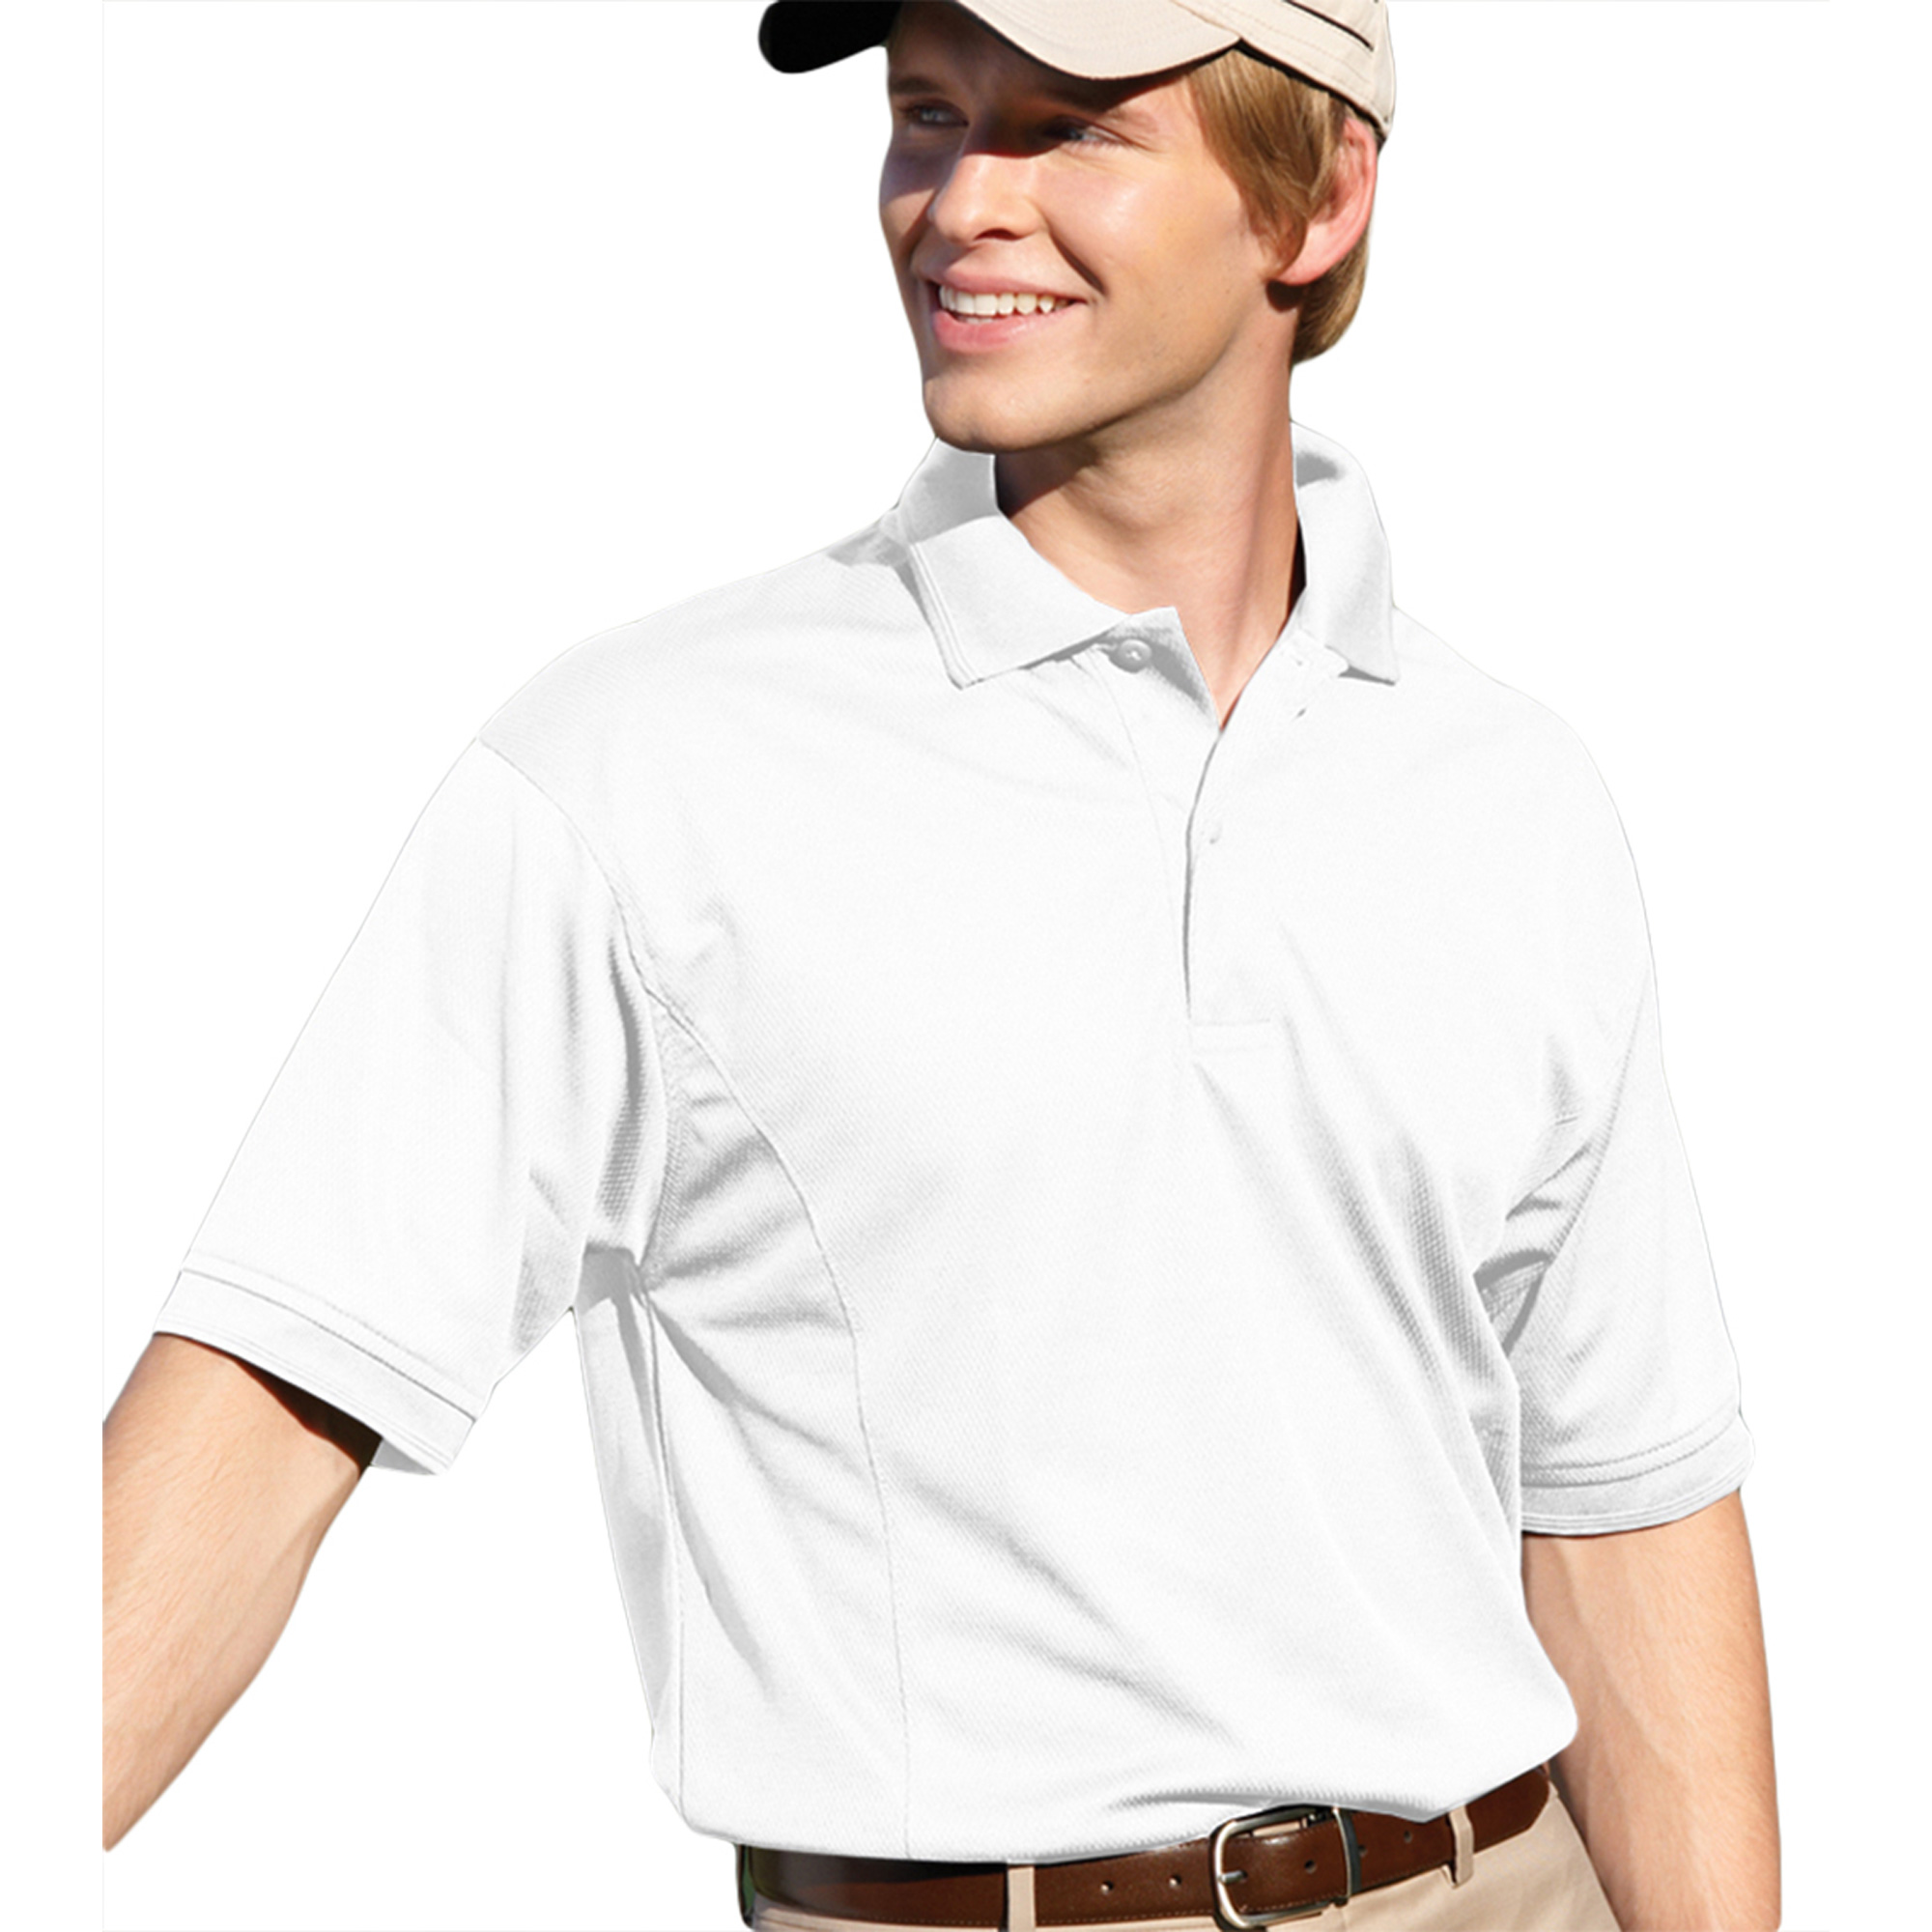 00820599180781 MENS PERFORMANCE GOLF SHIRT 2800 AQUA 2XL